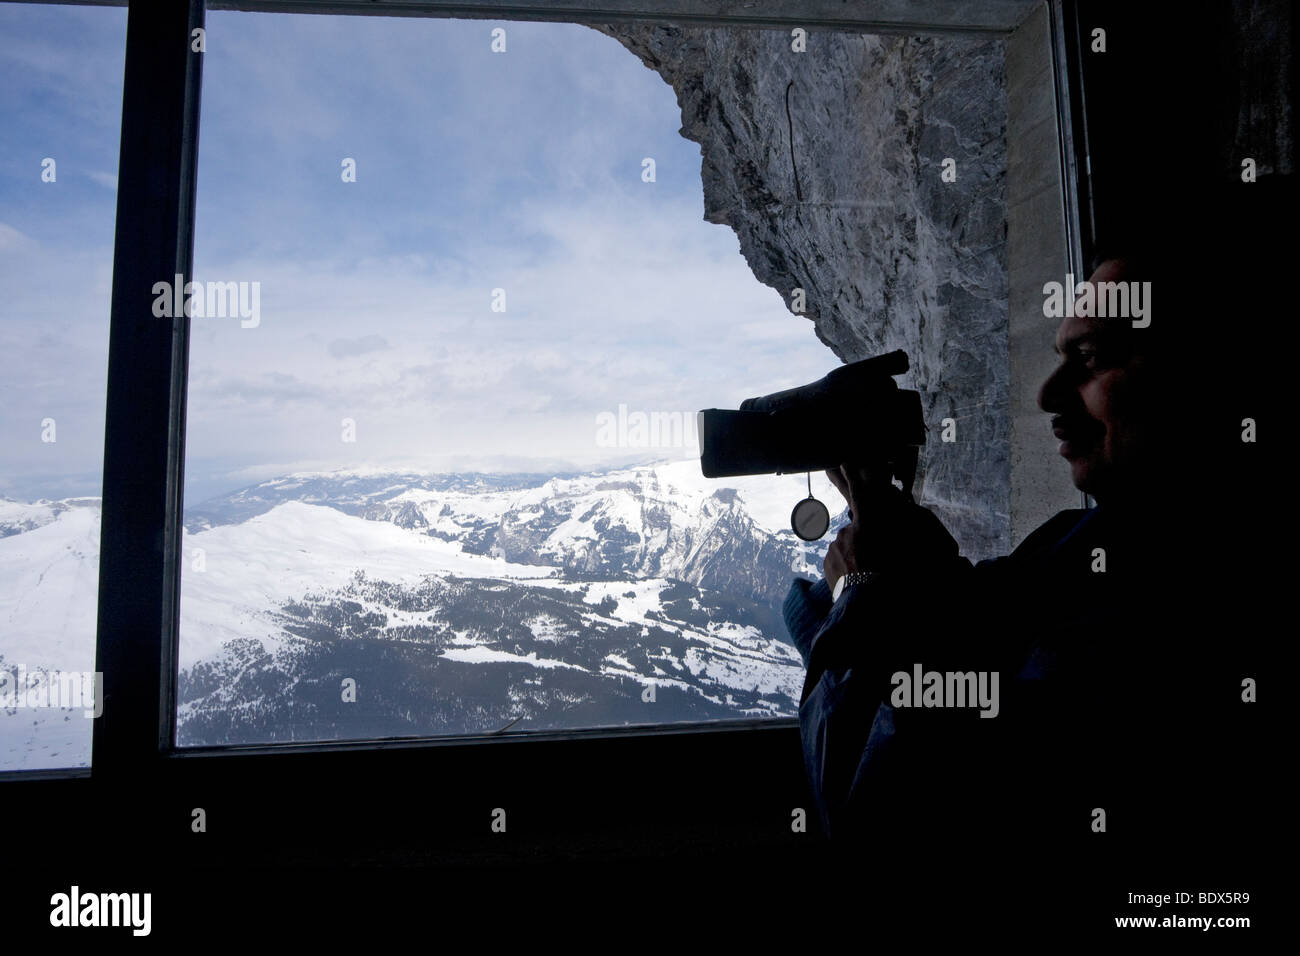 Visitor videos the mountains from viewpoint along the train route from Kleine Scheidegg to Jungfraujoch in Switzerland - Stock Image